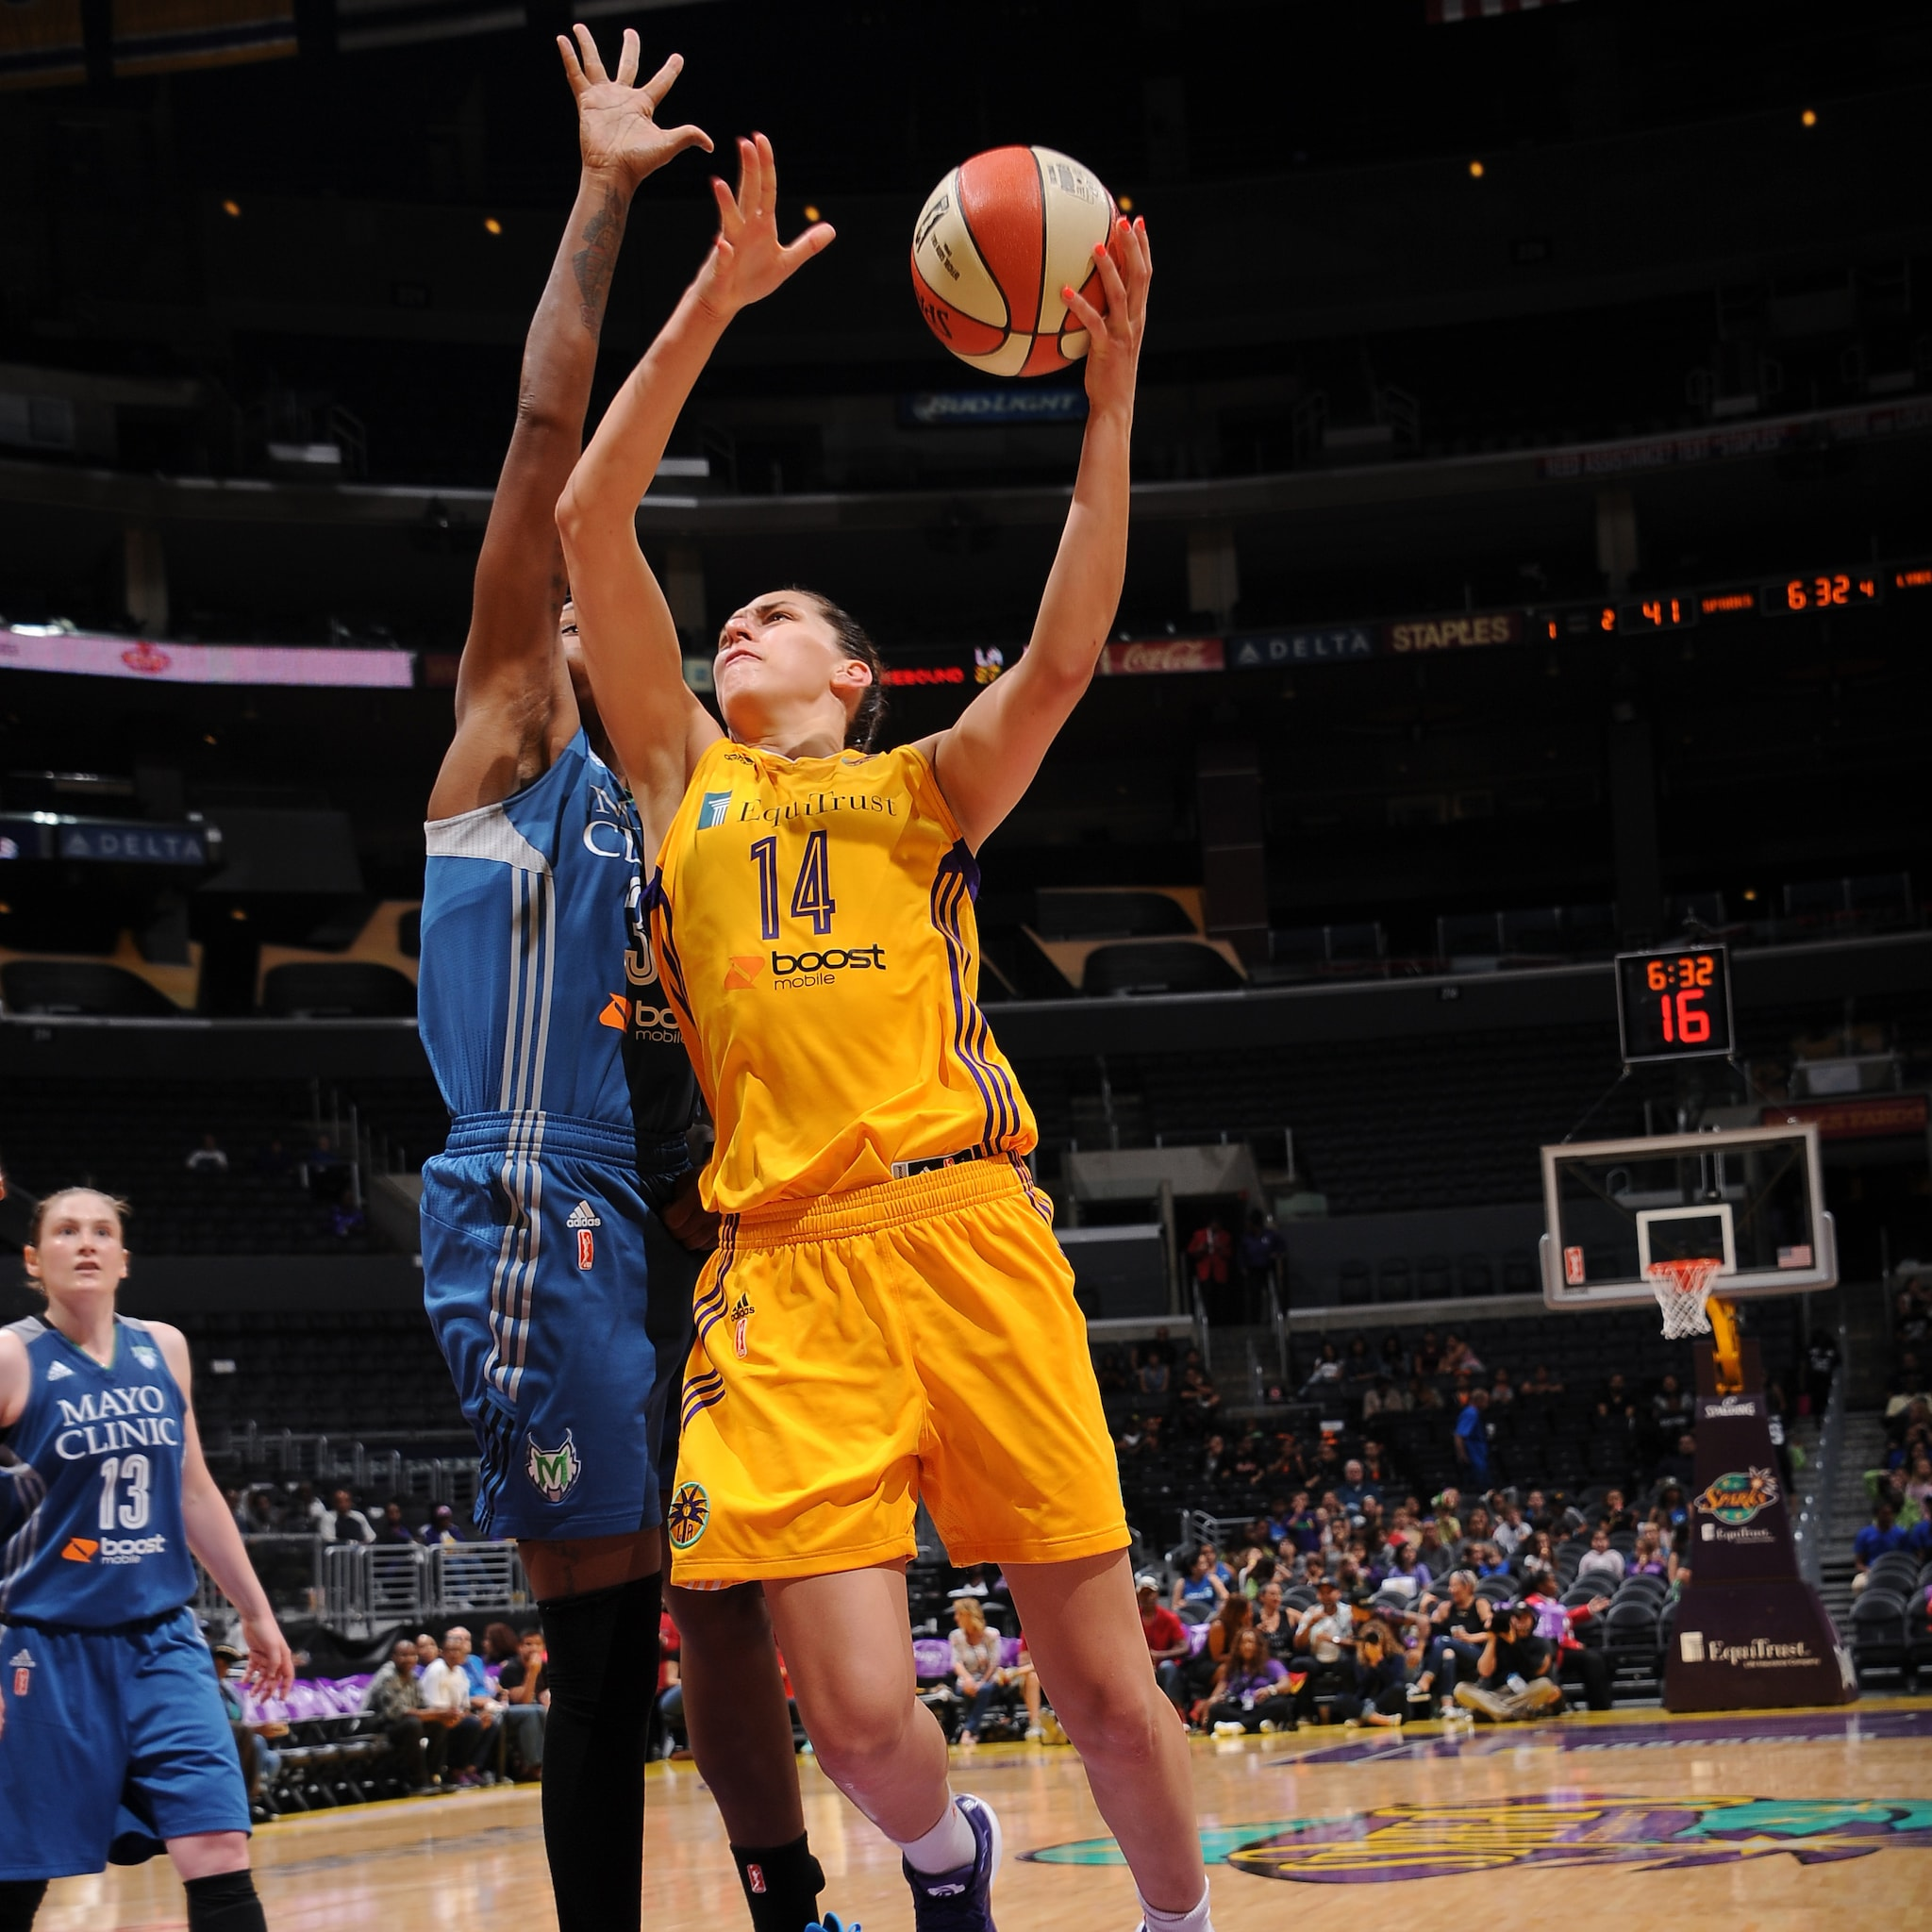 Sparks center Marianna Tolo played efficiently, scoring 10 points on 5-of-6 (83 percent) shooting.